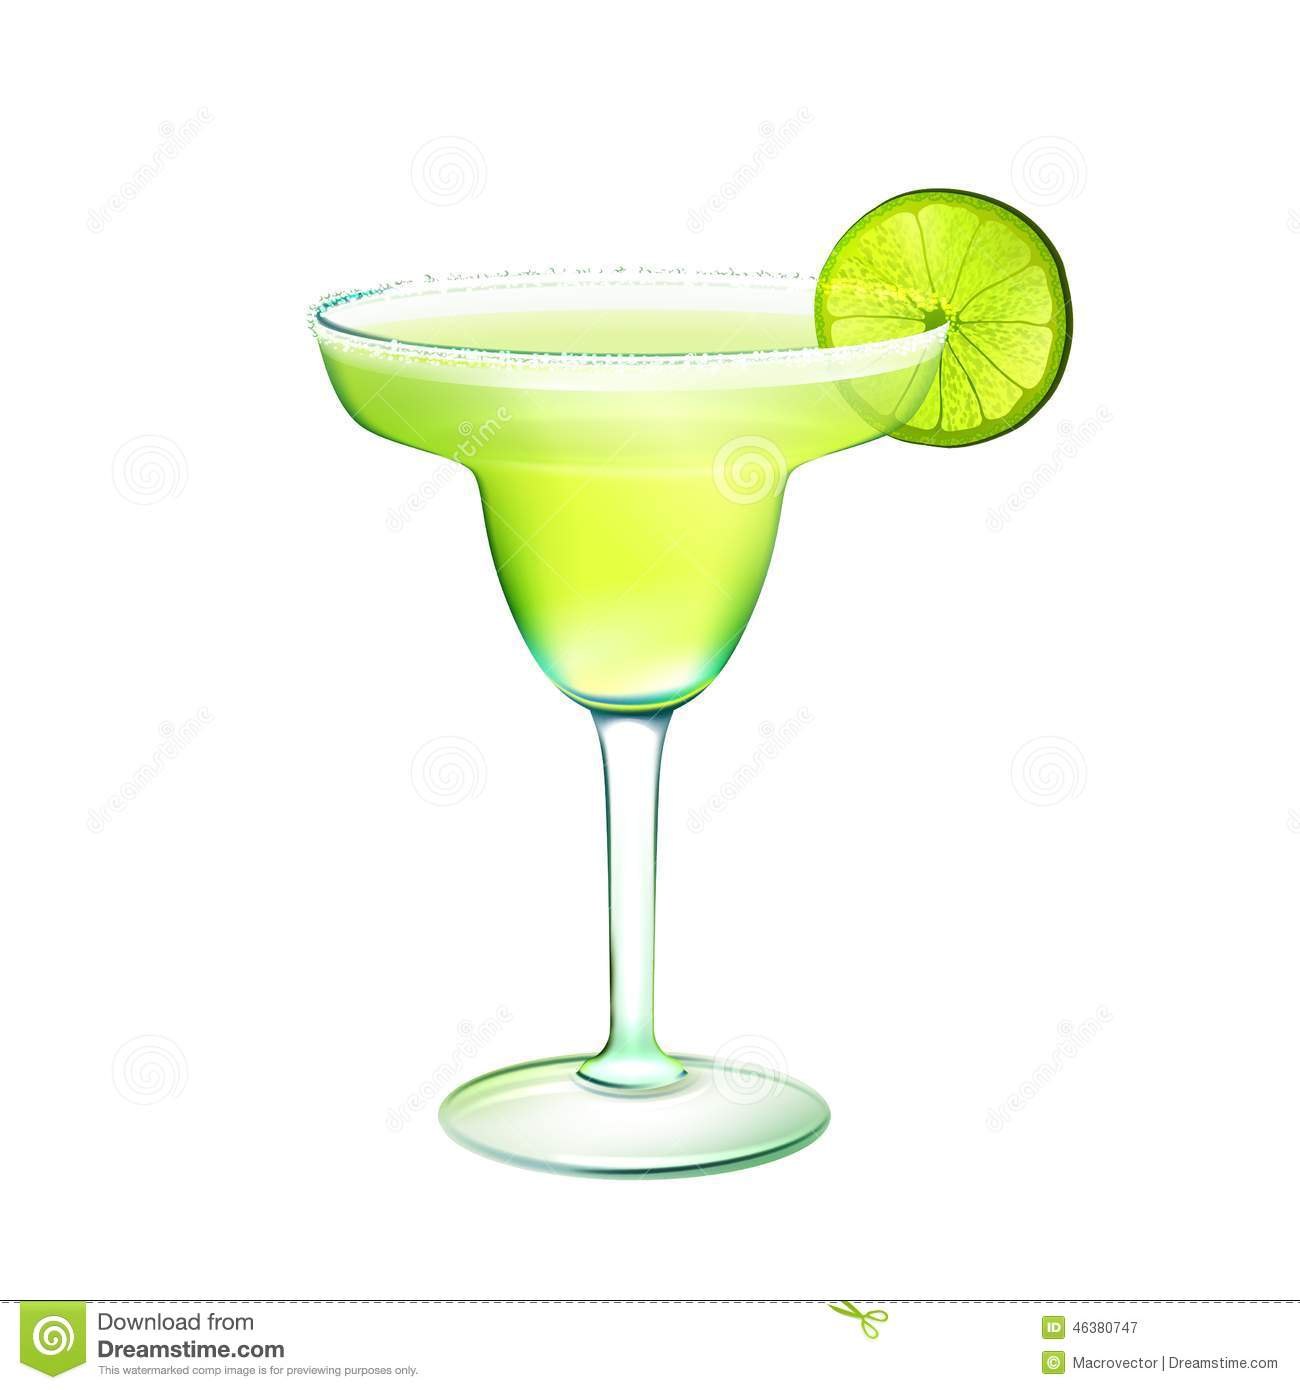 Margarita cocktail clipart.